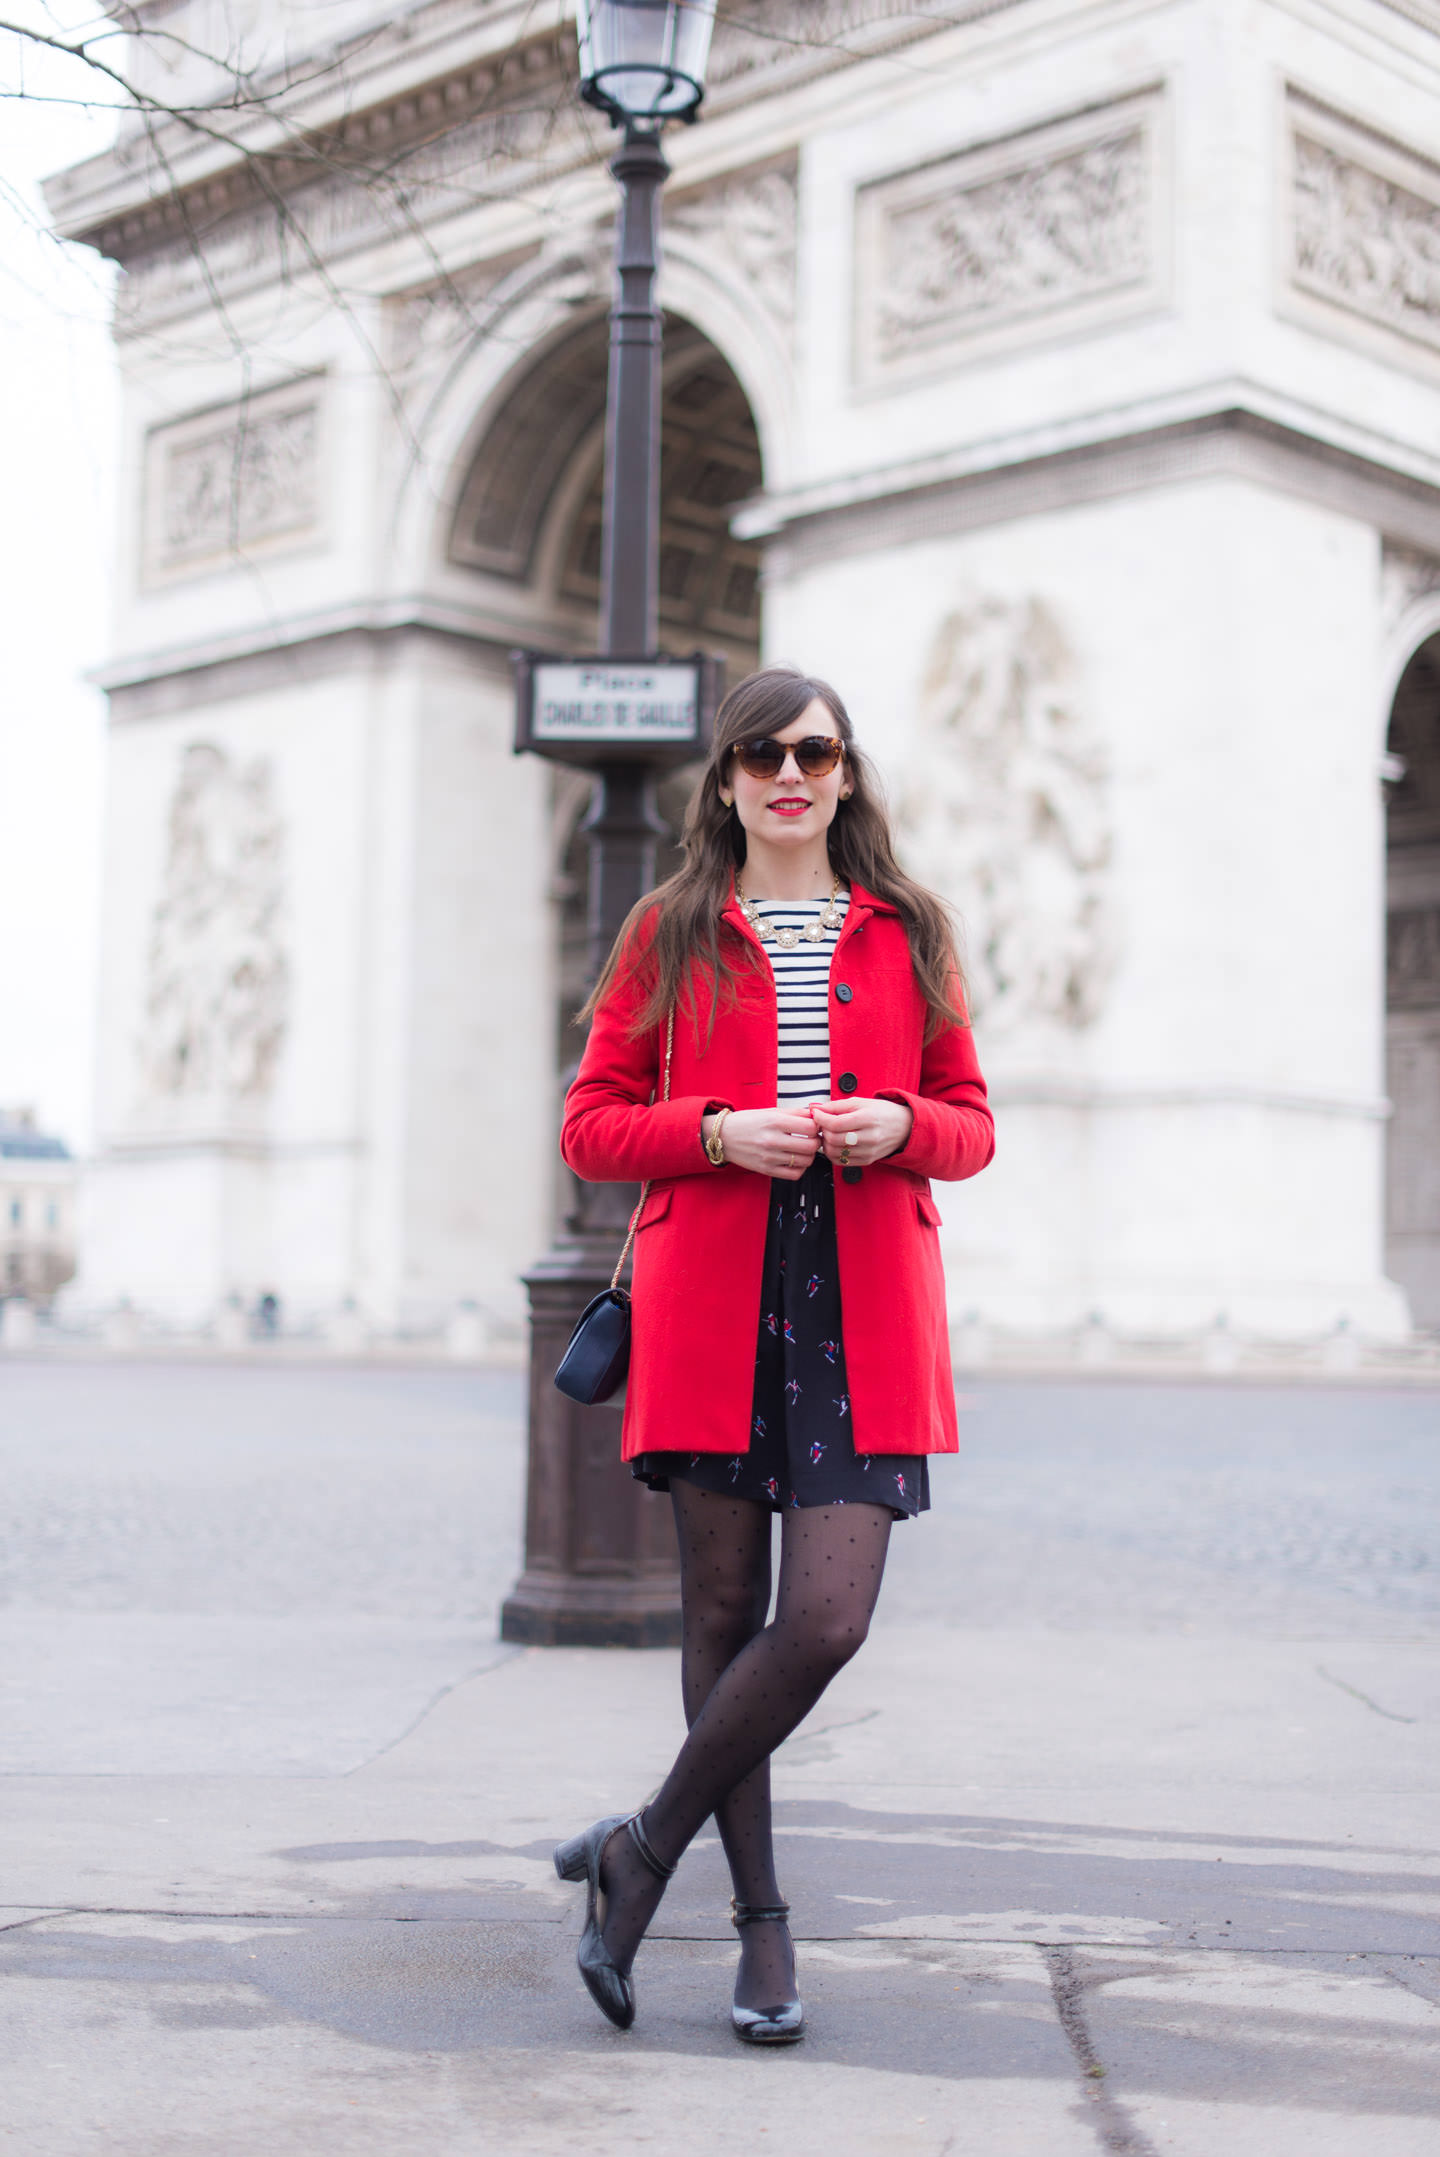 Blog-Mode-And-The-City-Looks-Au-Pied-Arc-Triomphe-Paris-8